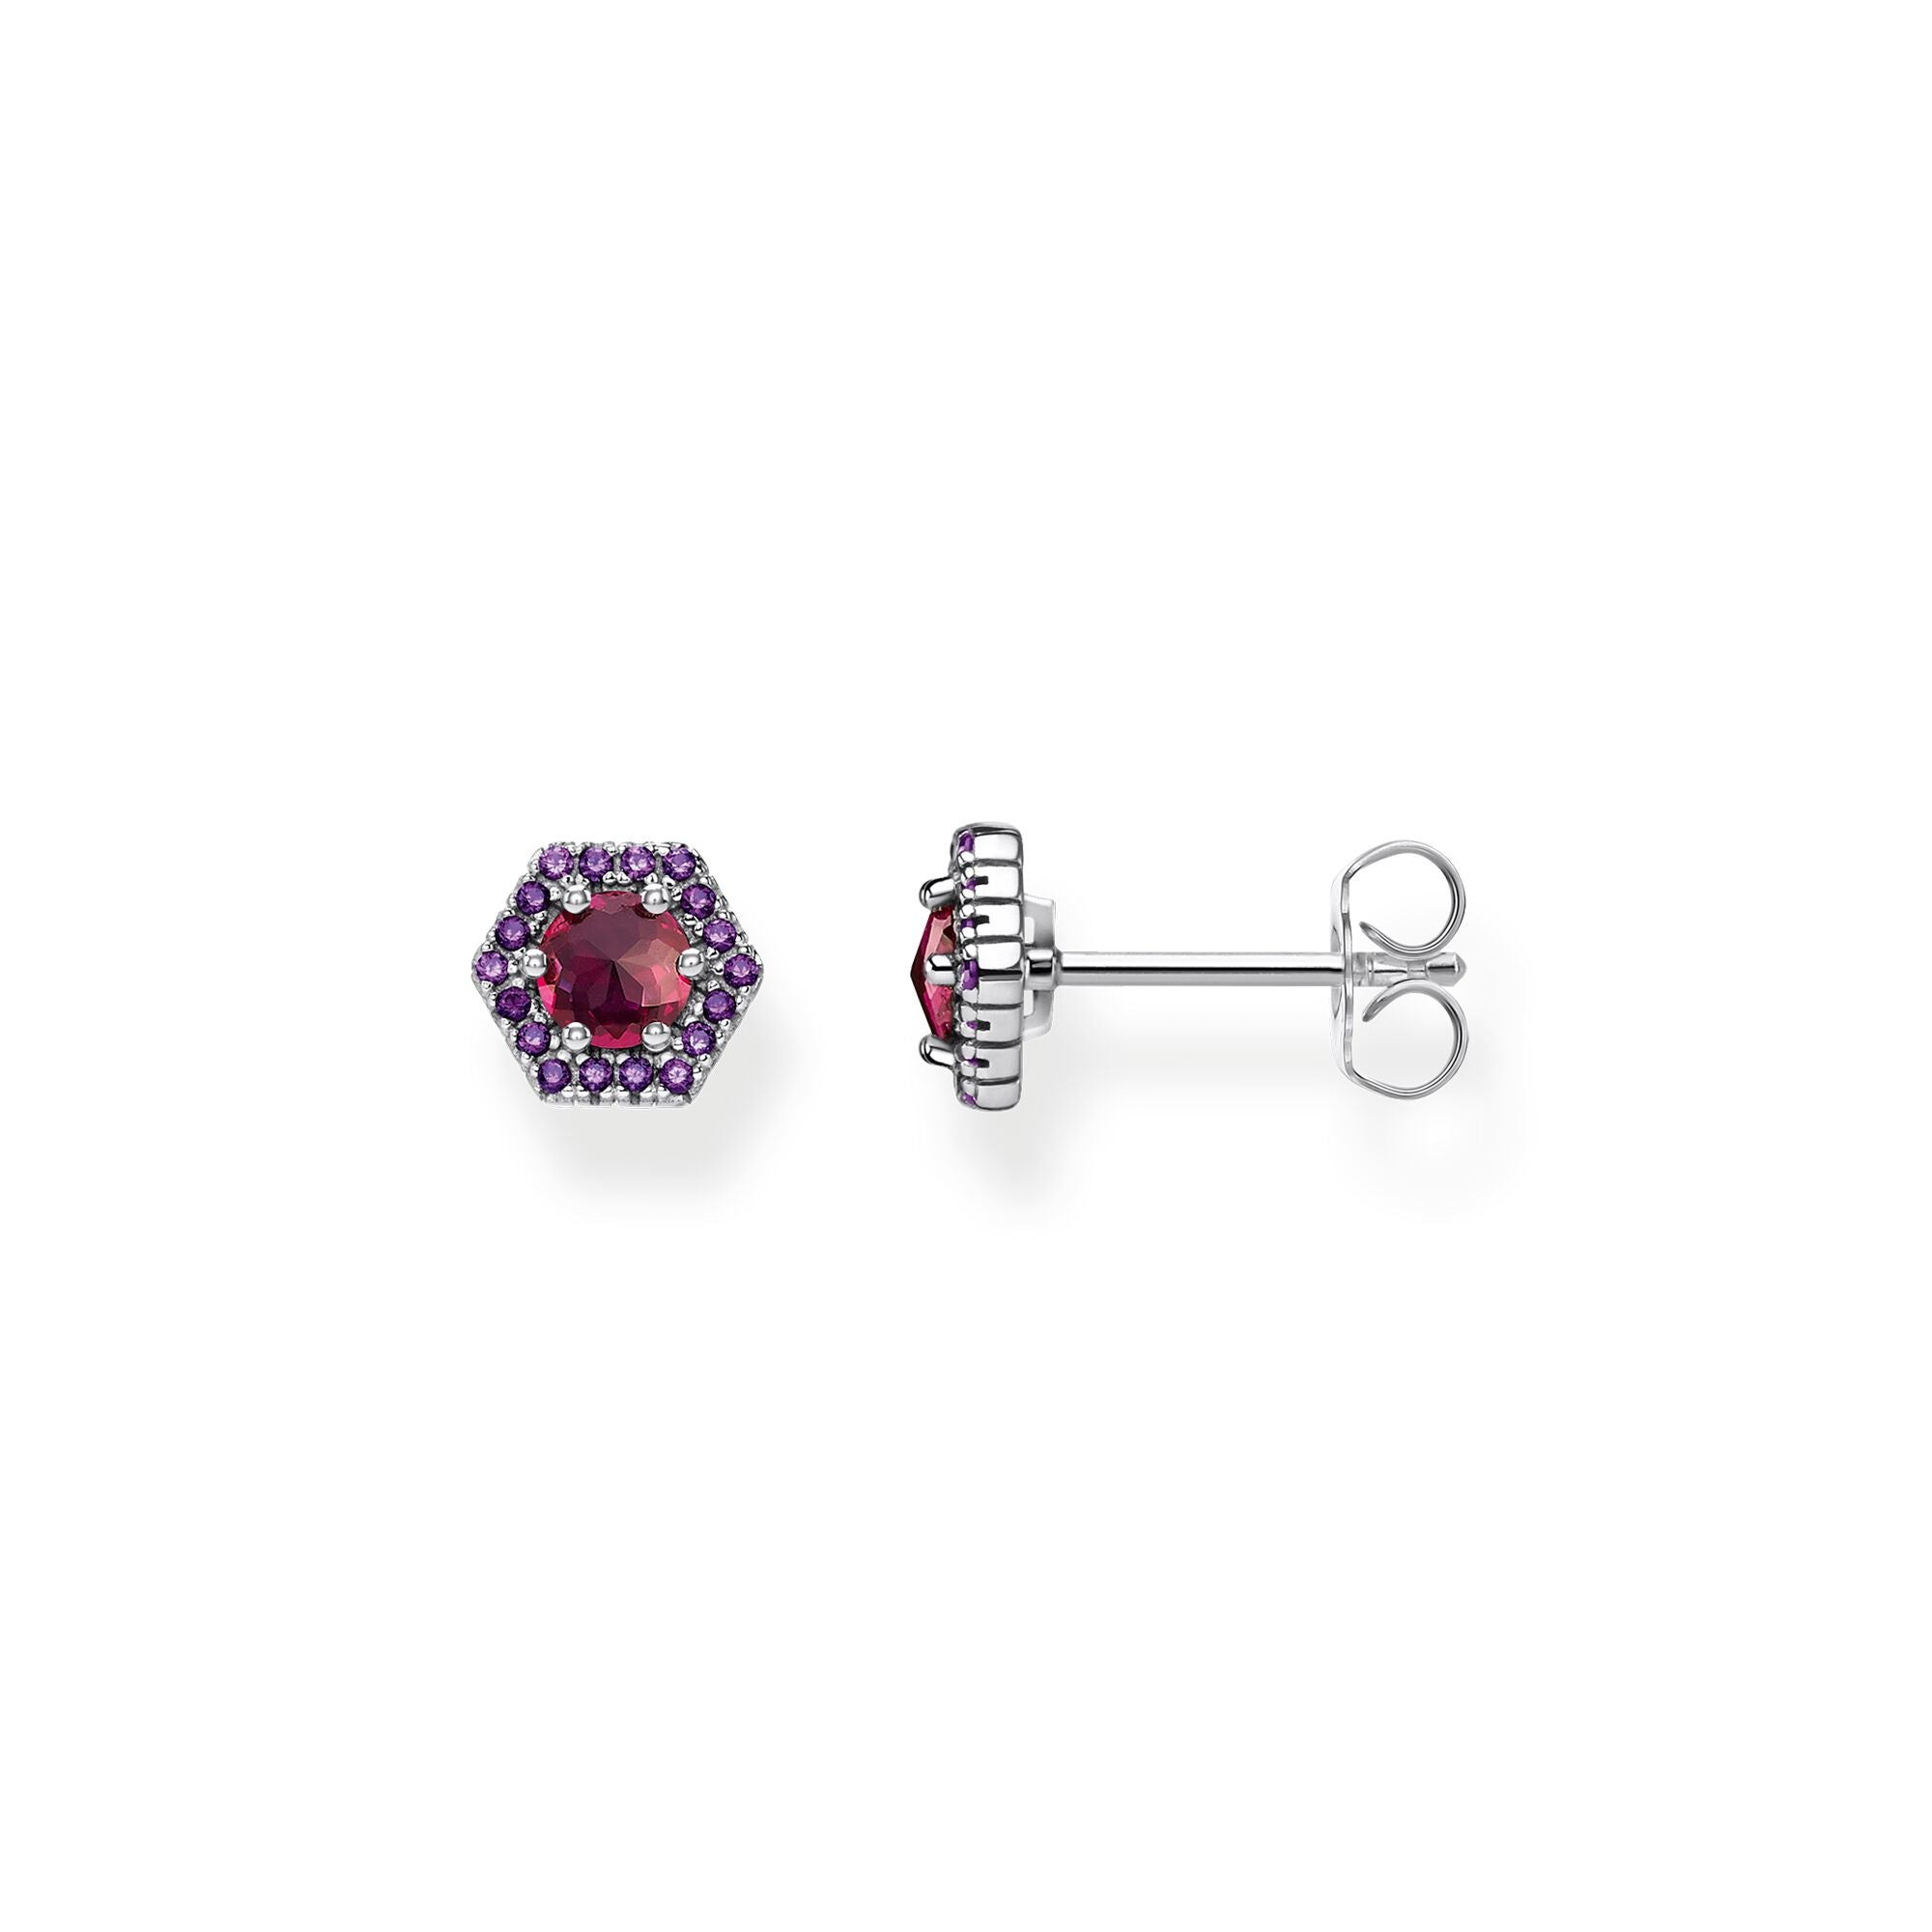 Sterling silver, designer thomas sabo, red and violet stone, hexagon shape, stud earrings